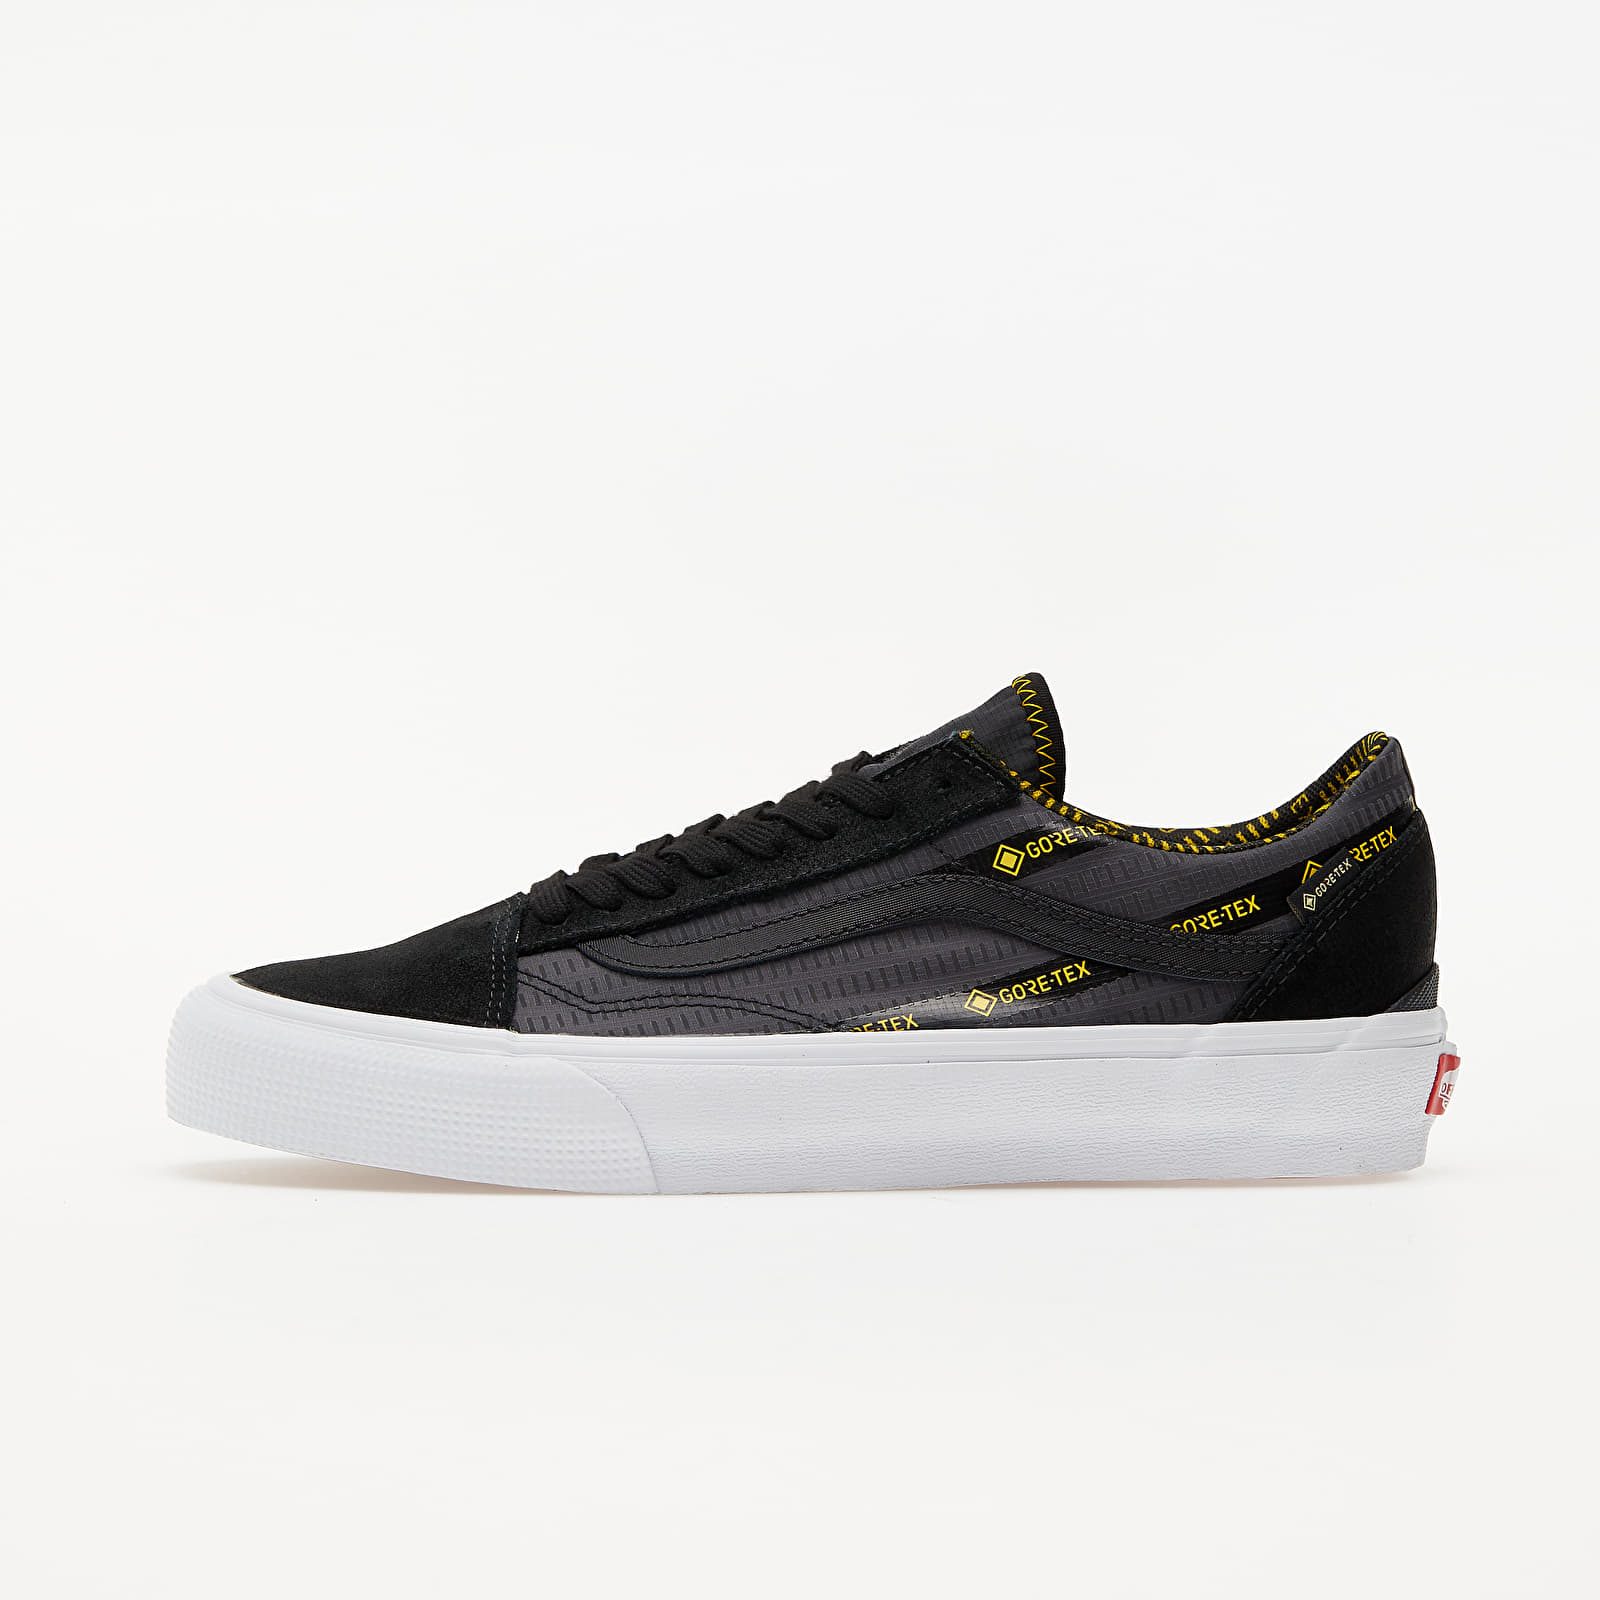 Vans Old Skool Gore-Tex (Gore-Tex) Black/ Lemon Chrome EUR 38